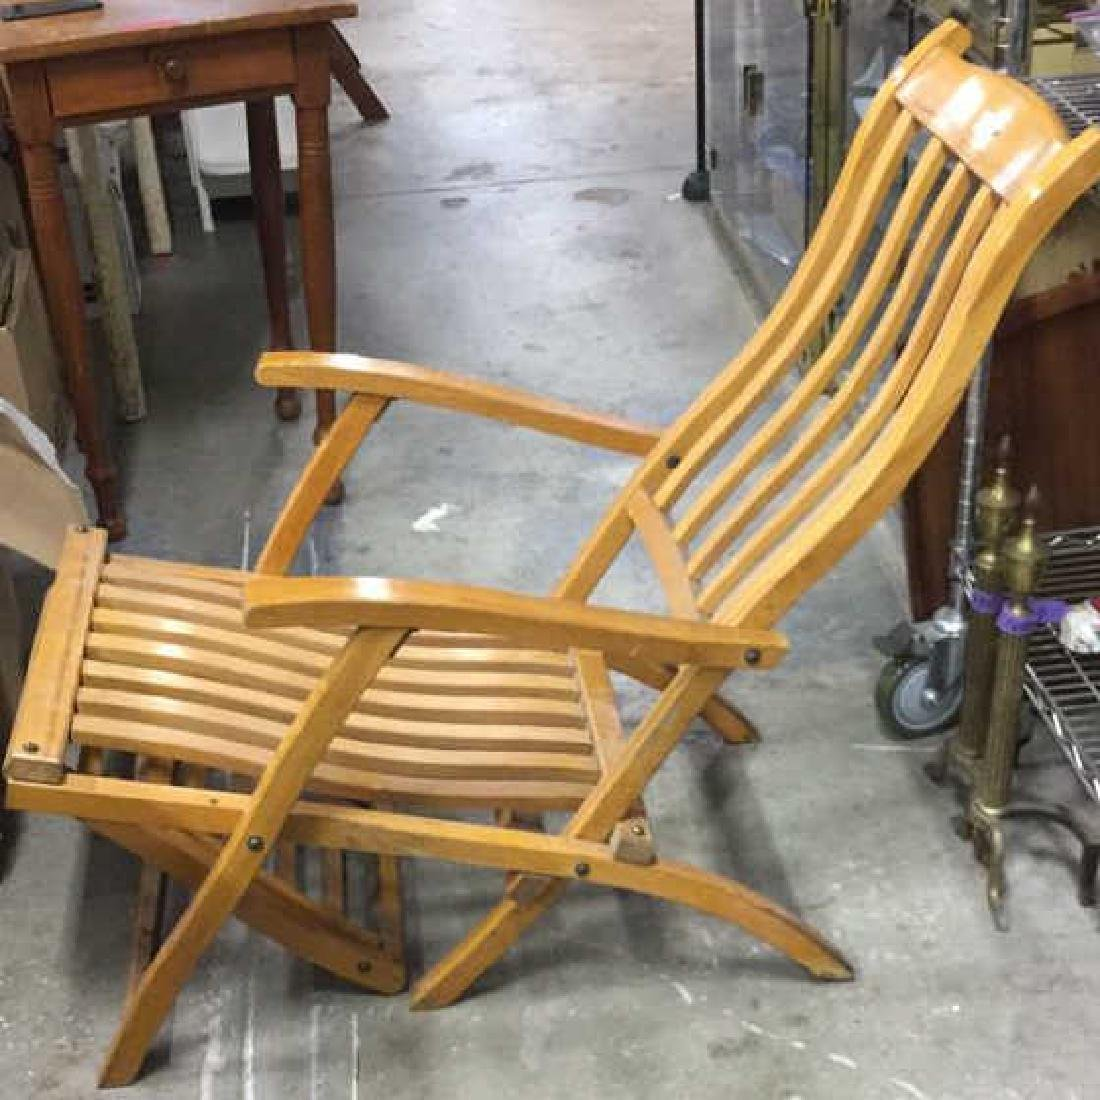 The R.M.S. Queen Mary Wooden Lounge Chair